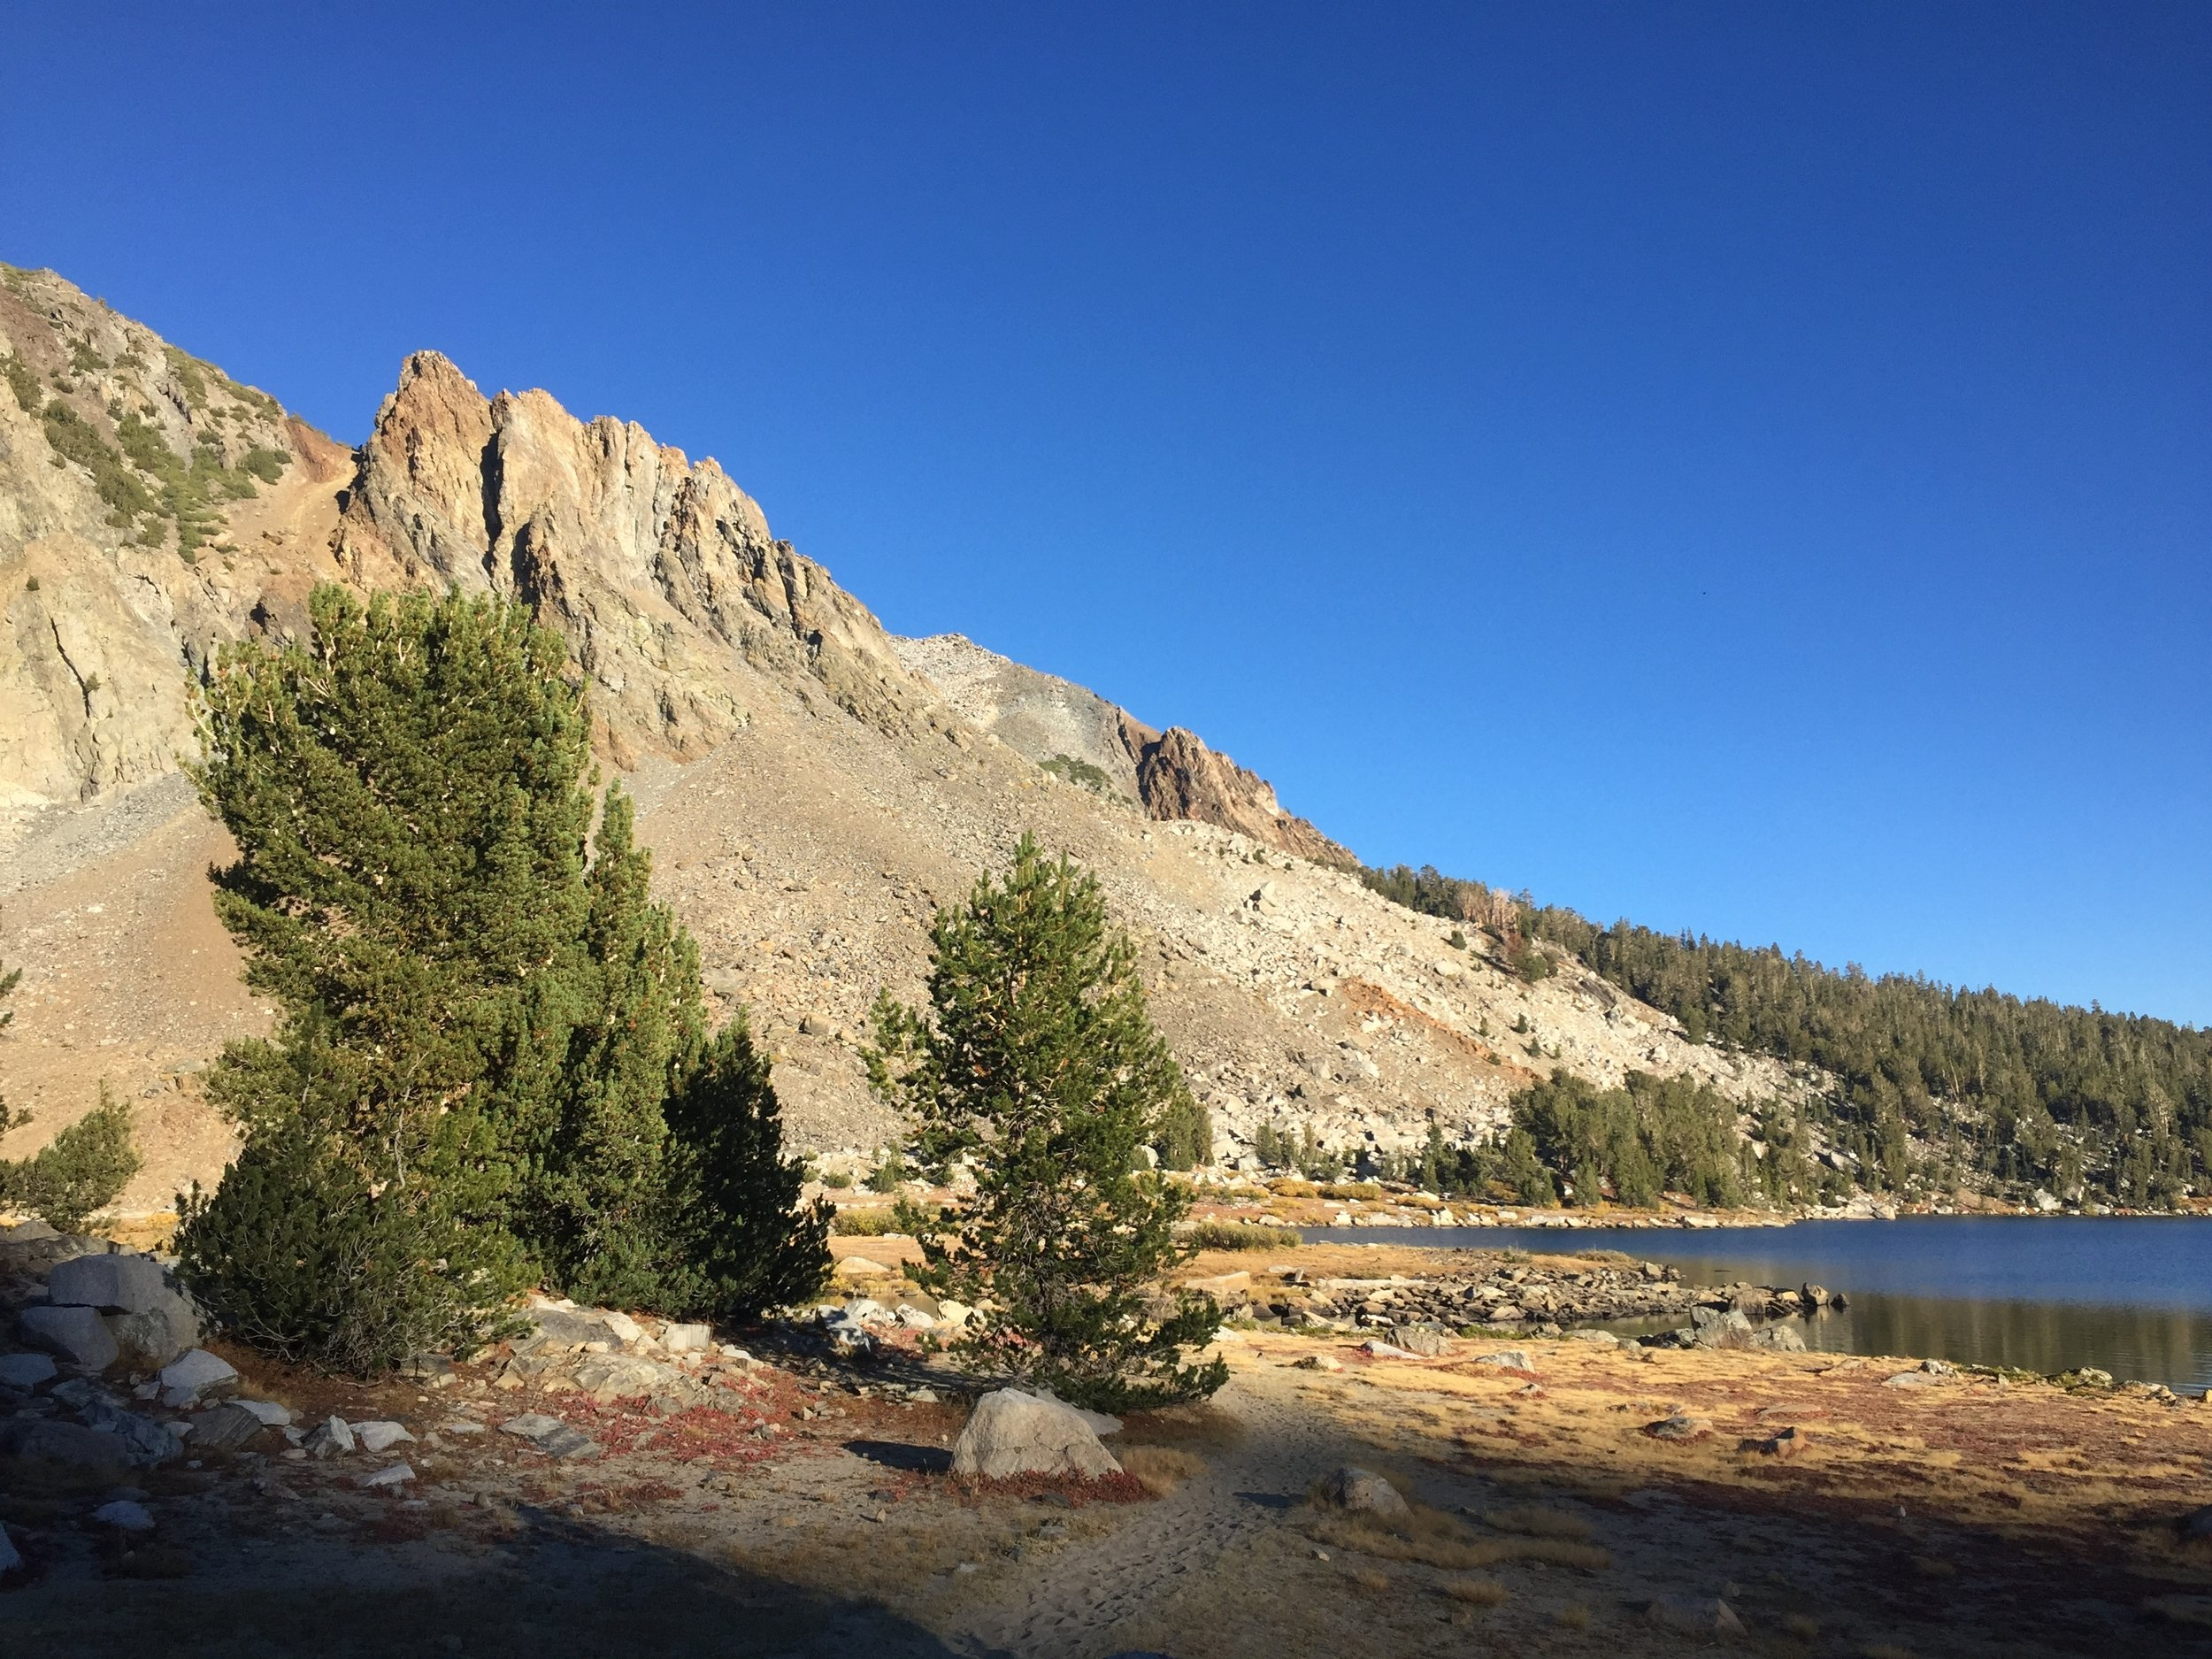 Virginia Lake would make a great camp spot any time of year, but it's especially pretty in he fall